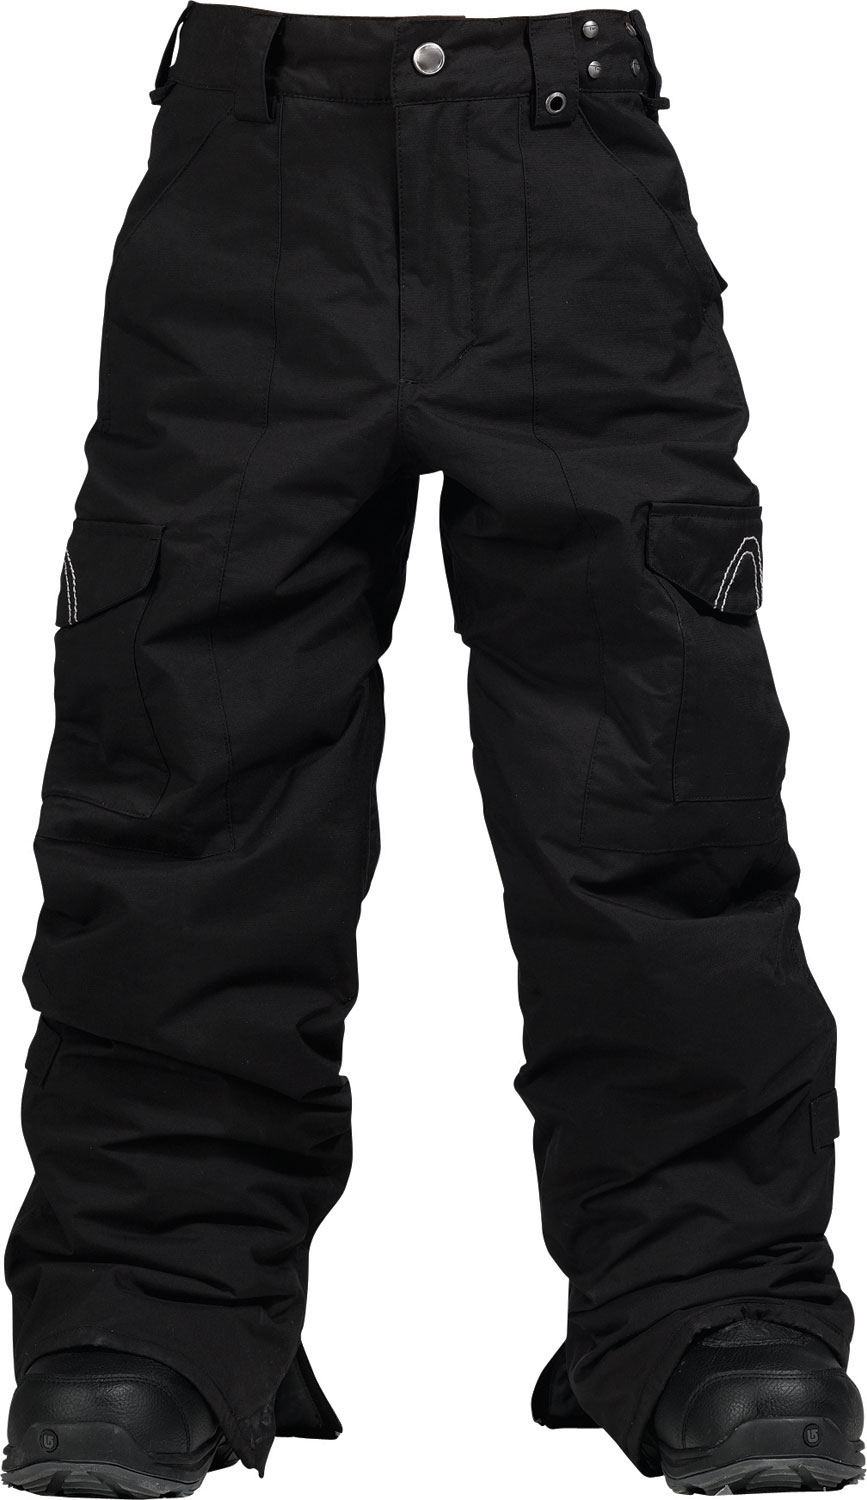 Snowboard Burton TWC Transmission Snowboard Pants for kids deliver champion style and performance. Double-layered DryRide Durashell is lined in whisper-soft taffeta, with fleece at the knees and seat to cushion the impact of hard landings. Quick and easy jacket-to-pant attachment, boot gaiter and Ghetto slits provide continuous protection from powder spray, while custom Leg Lifts keep cuffs scuff-free. Pockets aplenty offer a place for young riders to stow their stuff in the TWC Transmission from rider favorite, Burton.Key Features of The Burton TWC Transmission Kids Snowboard Pants: 5,000mm Waterproof 4,000g Breathability DRYRIDE Durashell 2-Layer Coated Fabric [5,000MM, 4,000G] Thermacore Insulation [60G Throughout] Embossed Taffeta Lining Critically Taped Seams Fleece Butt and Knees Ghetto Slits Link ZIP Jacket-to-Pant Velcro Butt Pockets Zippered Handwarmer Pockets Microfleece and Taffeta-Lined Pockets Jacket-to-Pant Interface Articulated Knees Boot Gaiter Microfleece-Lined Waistband Internal Waistband Adjustment Leg Lifts,Keep Your Cuffs Scuff-Free - $81.95